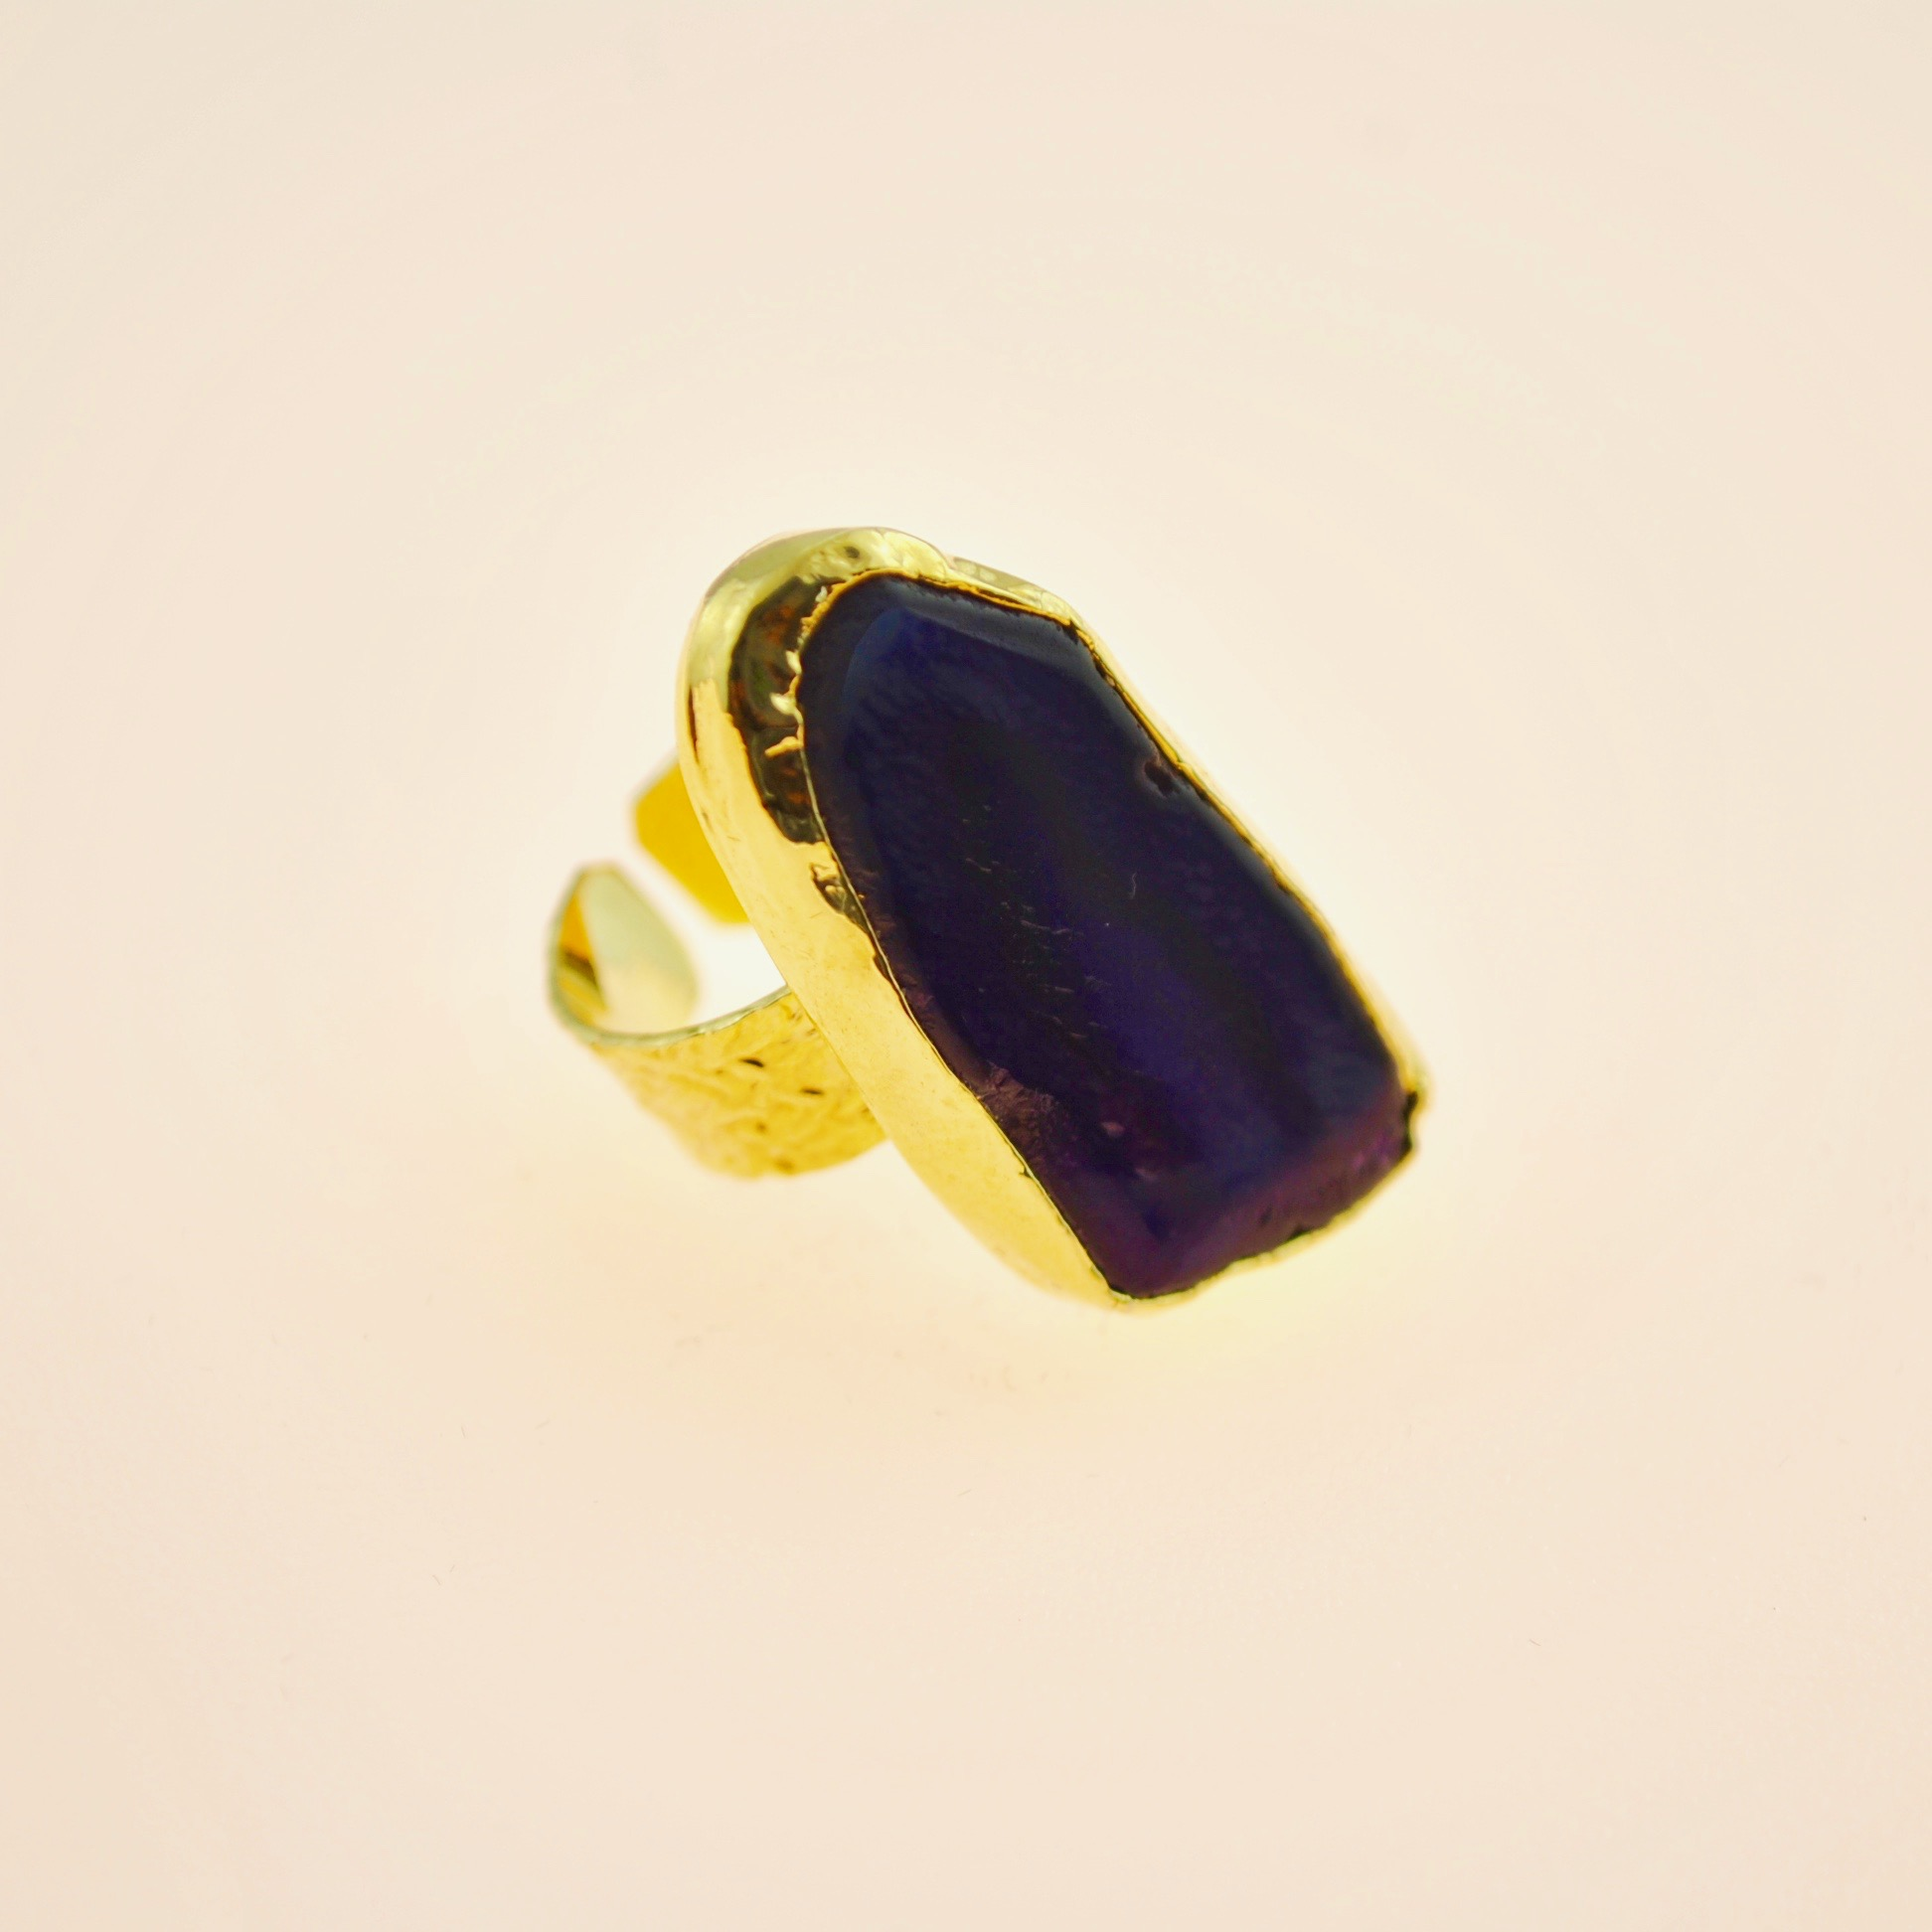 Purple Agate 22k Gold vermeil ring in adjustable size